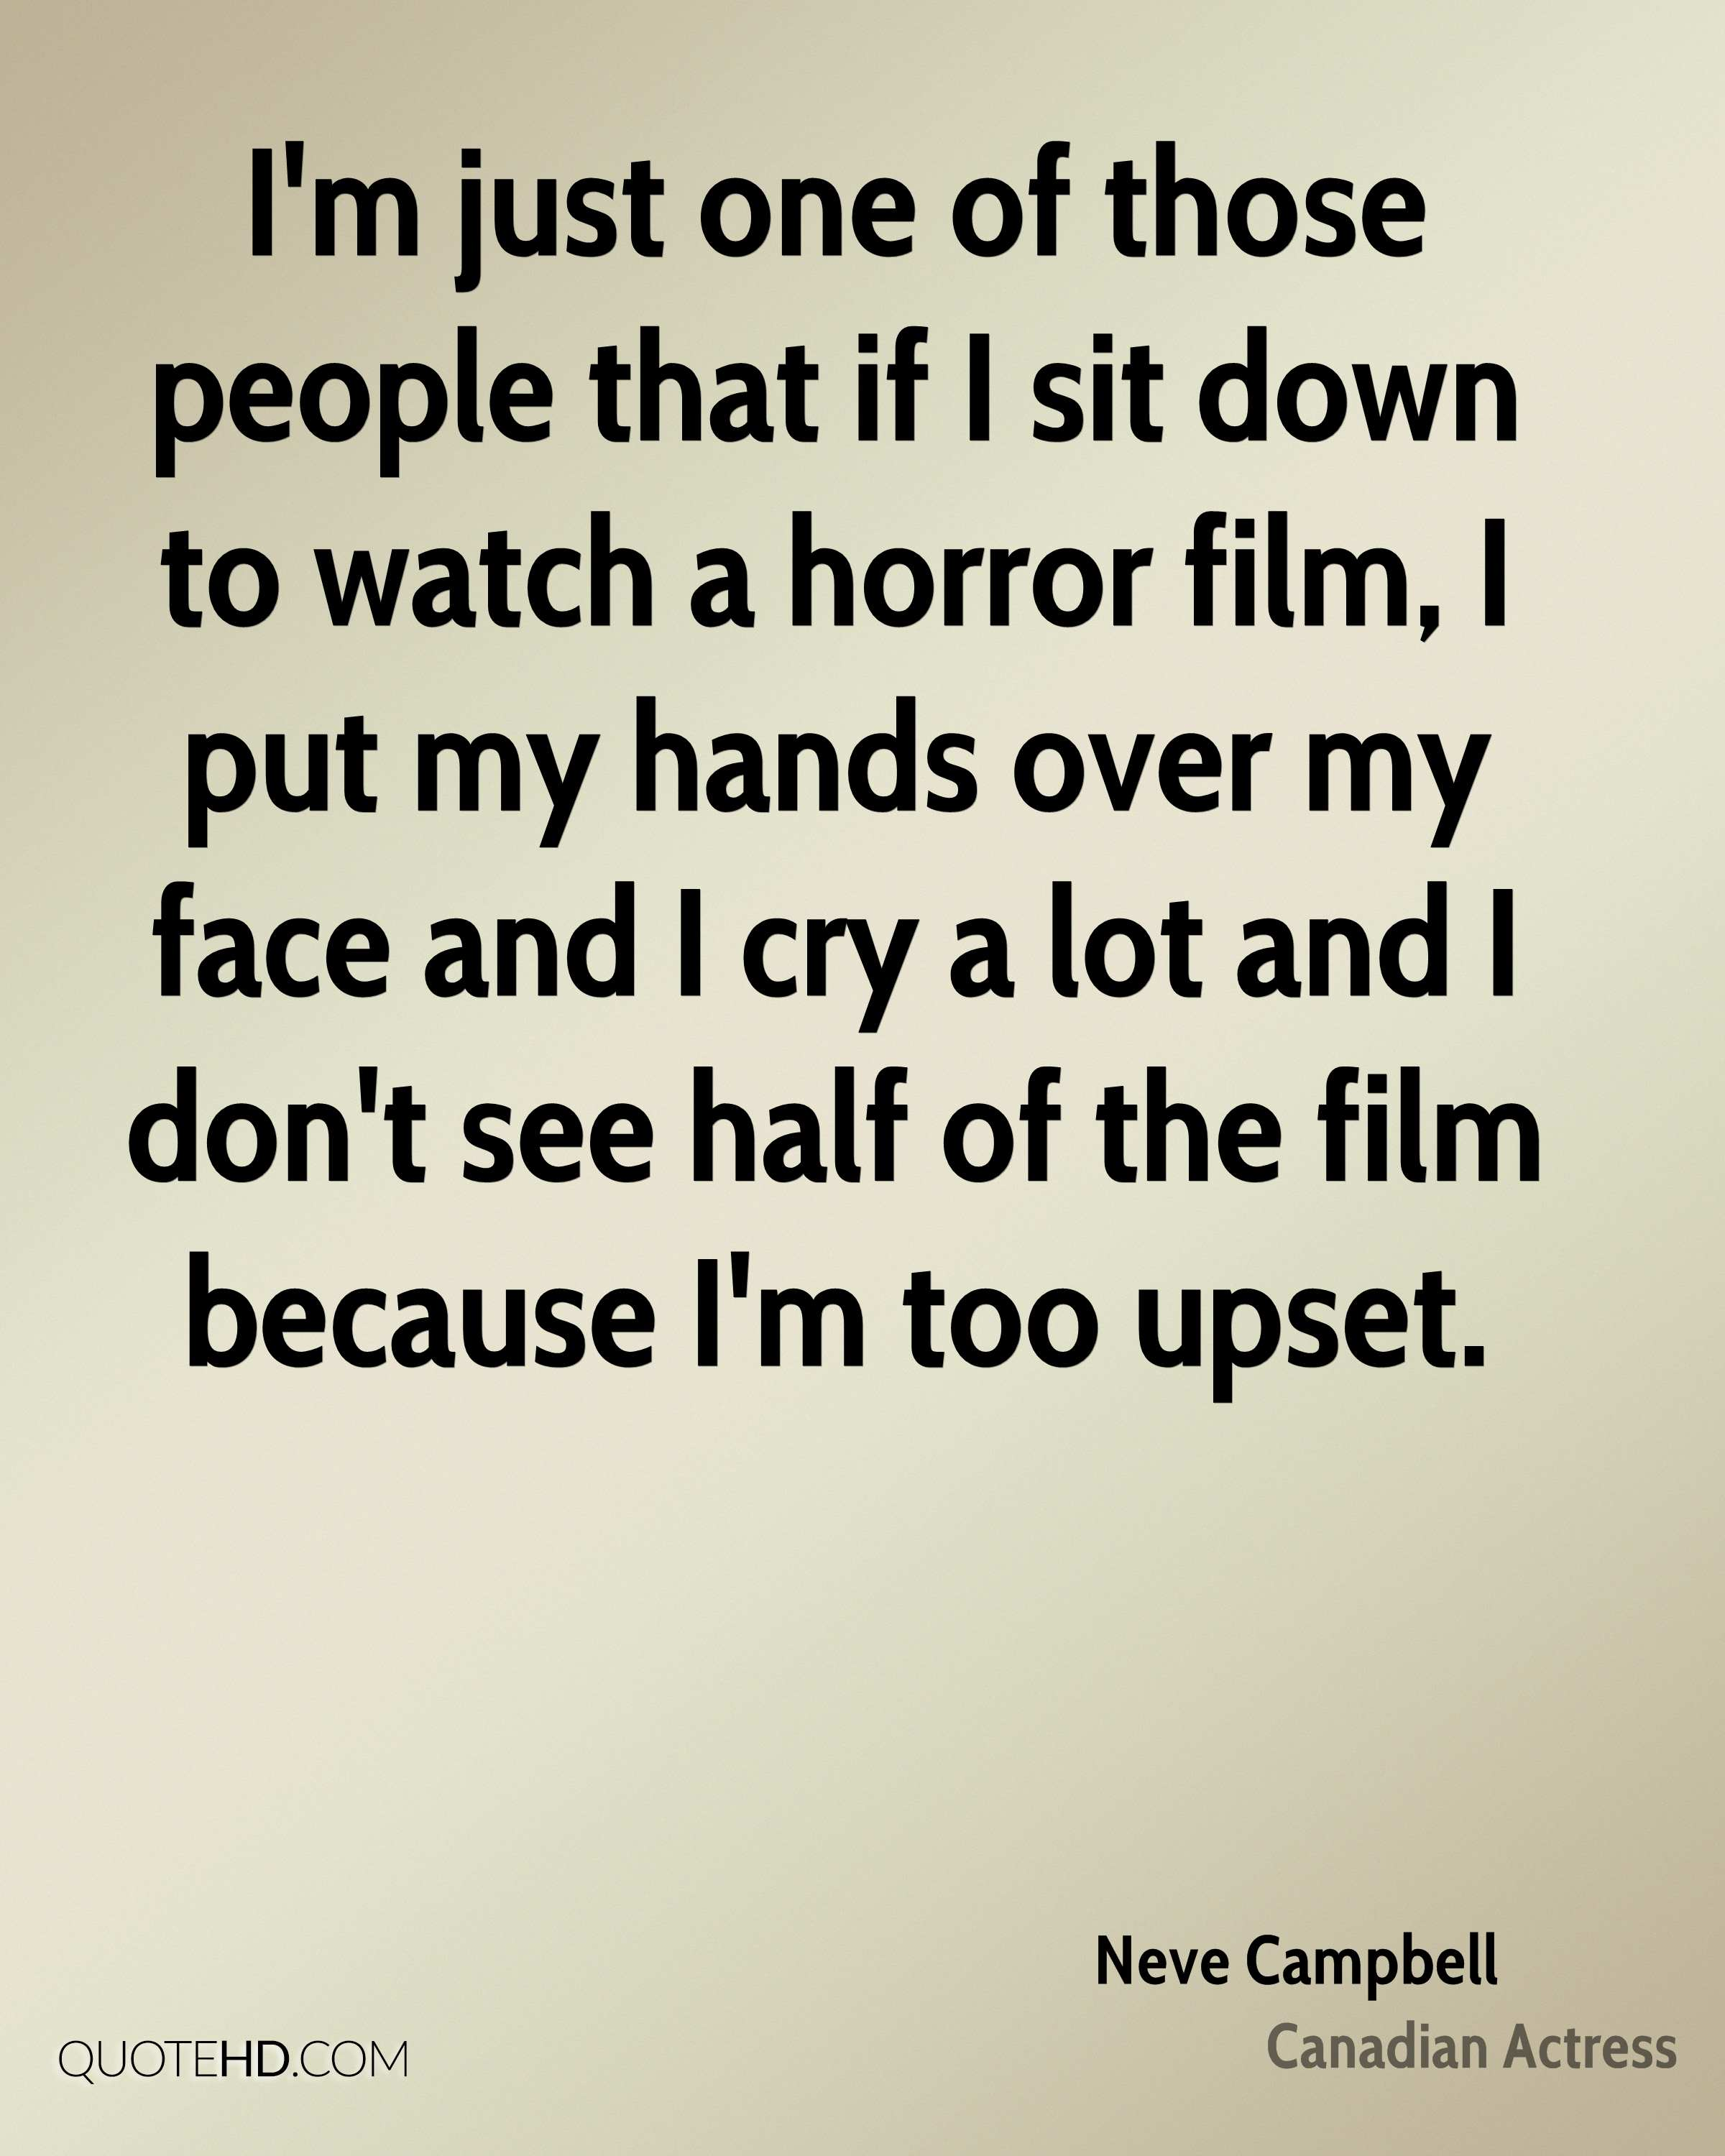 Neve Campbell Quotes | QuoteHD